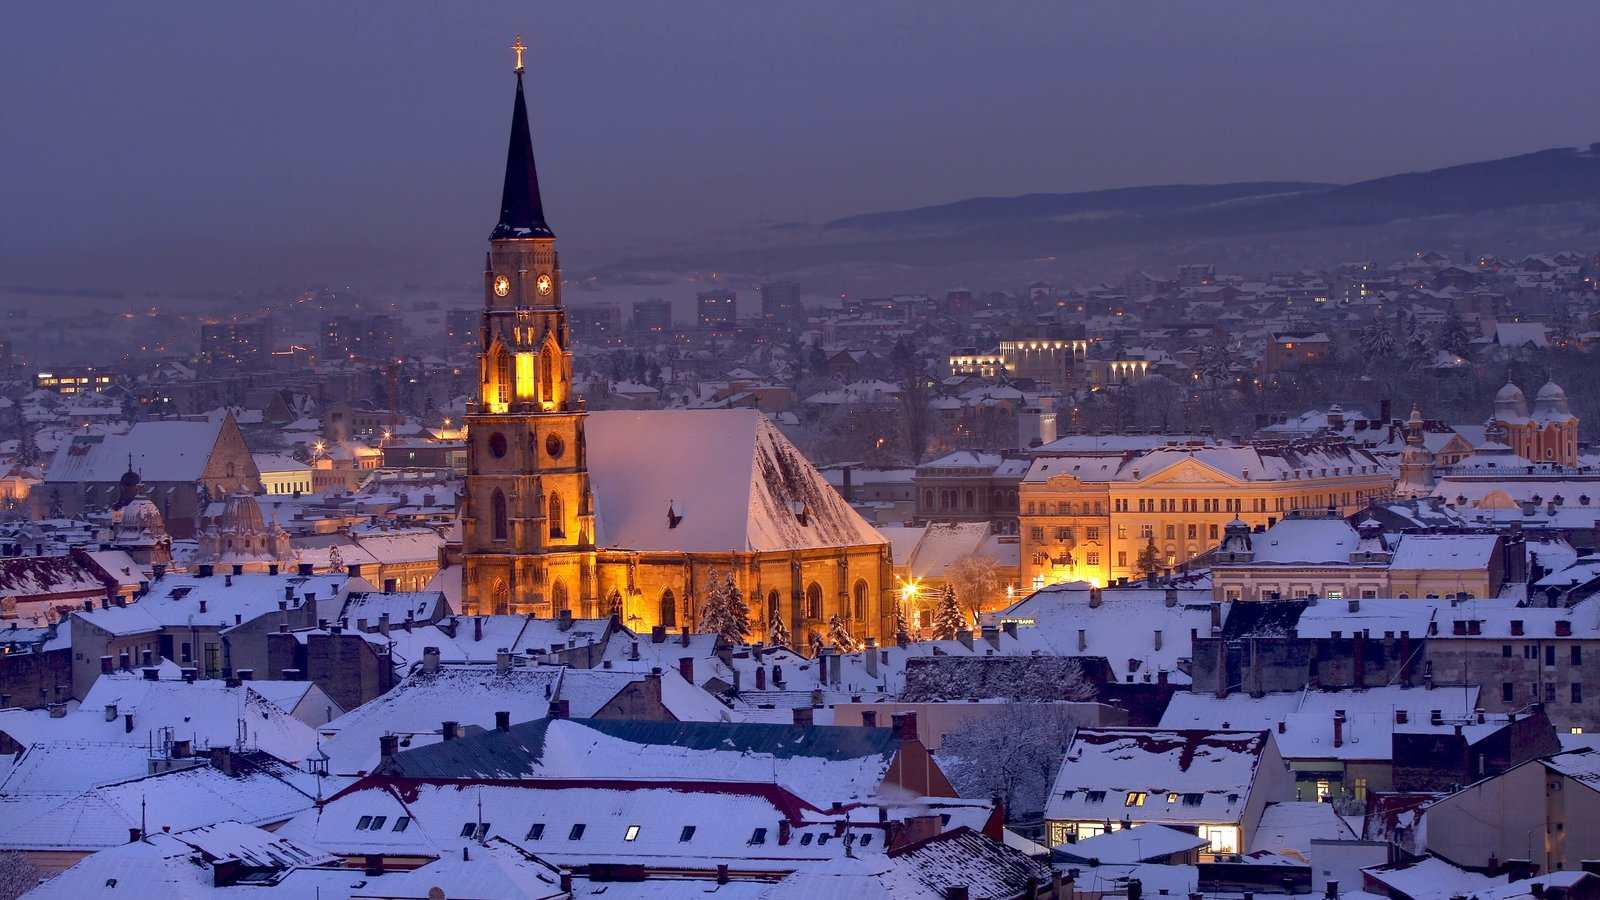 Transylvania which includes night scenes and landscape views